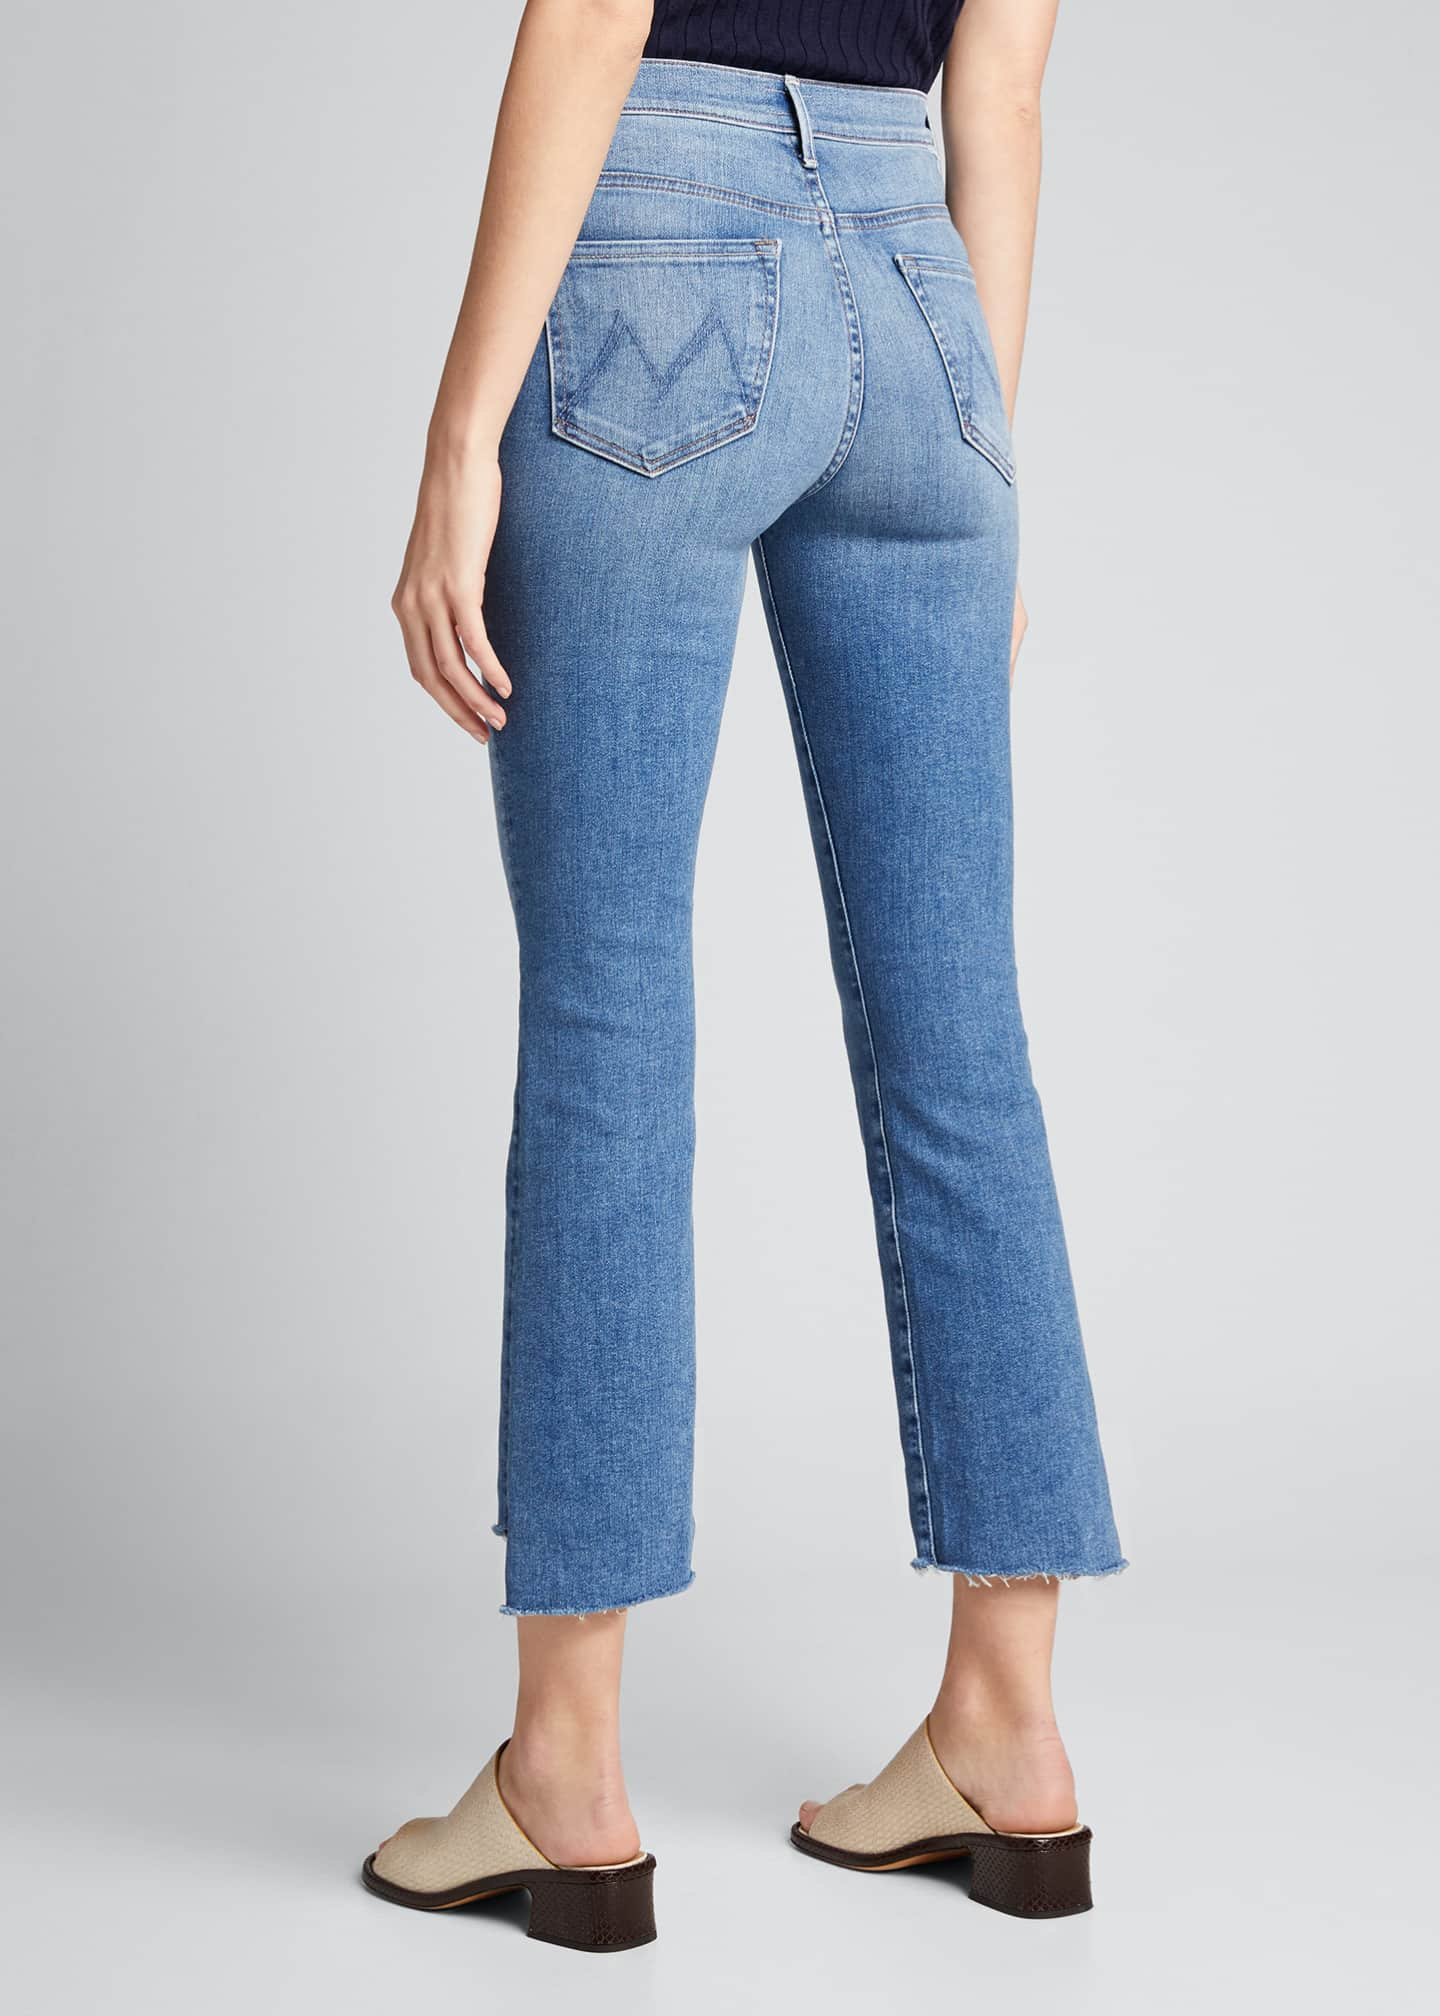 Image 2 of 5: The Insider Crop Step Fray Jeans